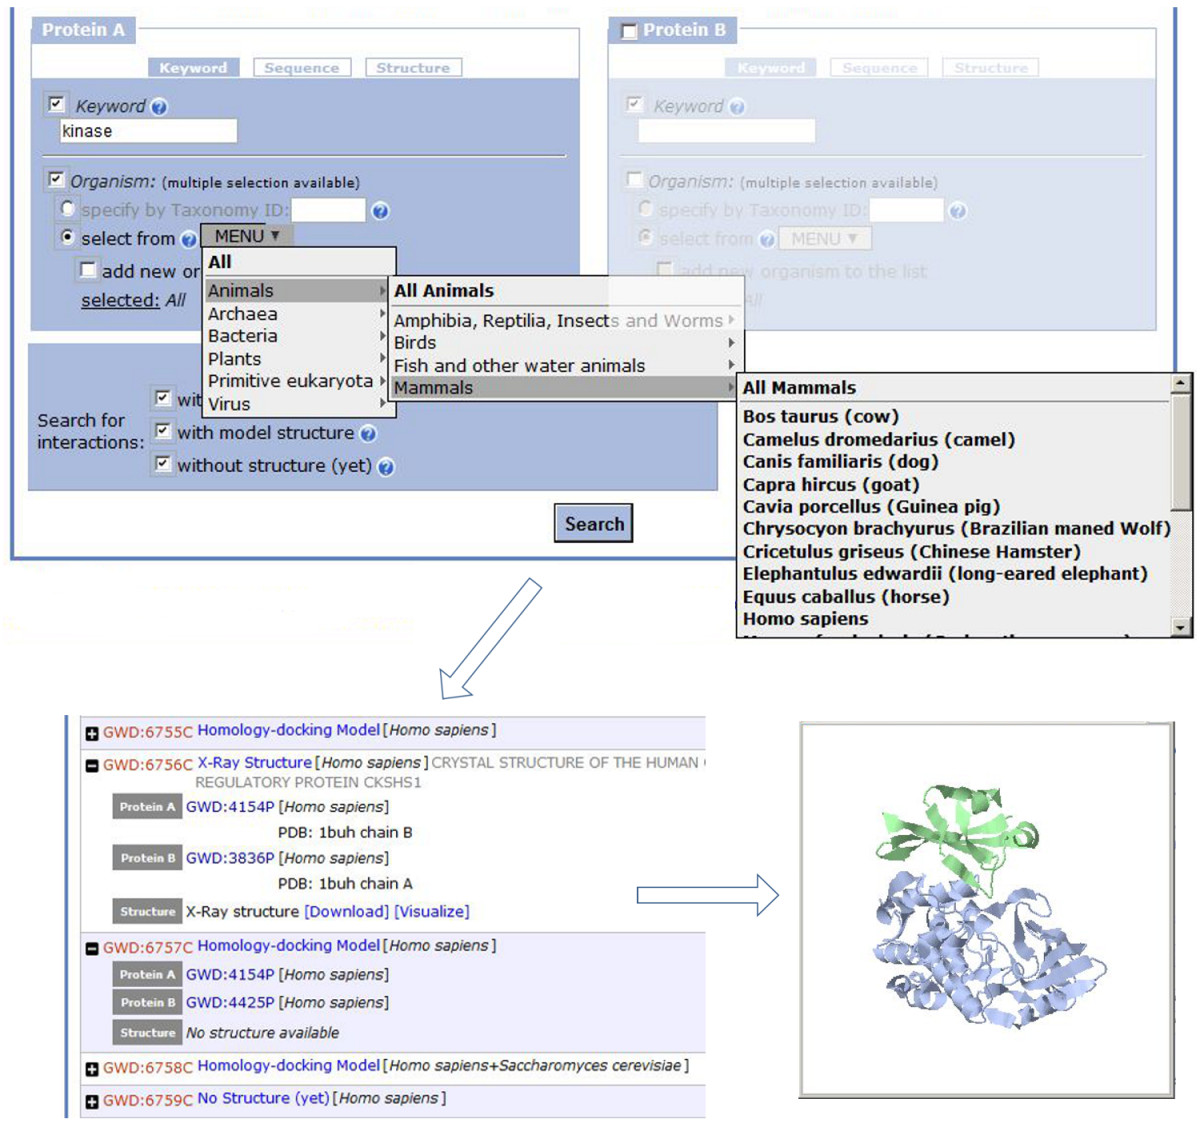 http://static-content.springer.com/image/art%3A10.1186%2F1479-7364-6-7/MediaObjects/40246_2012_Article_5_Fig2_HTML.jpg